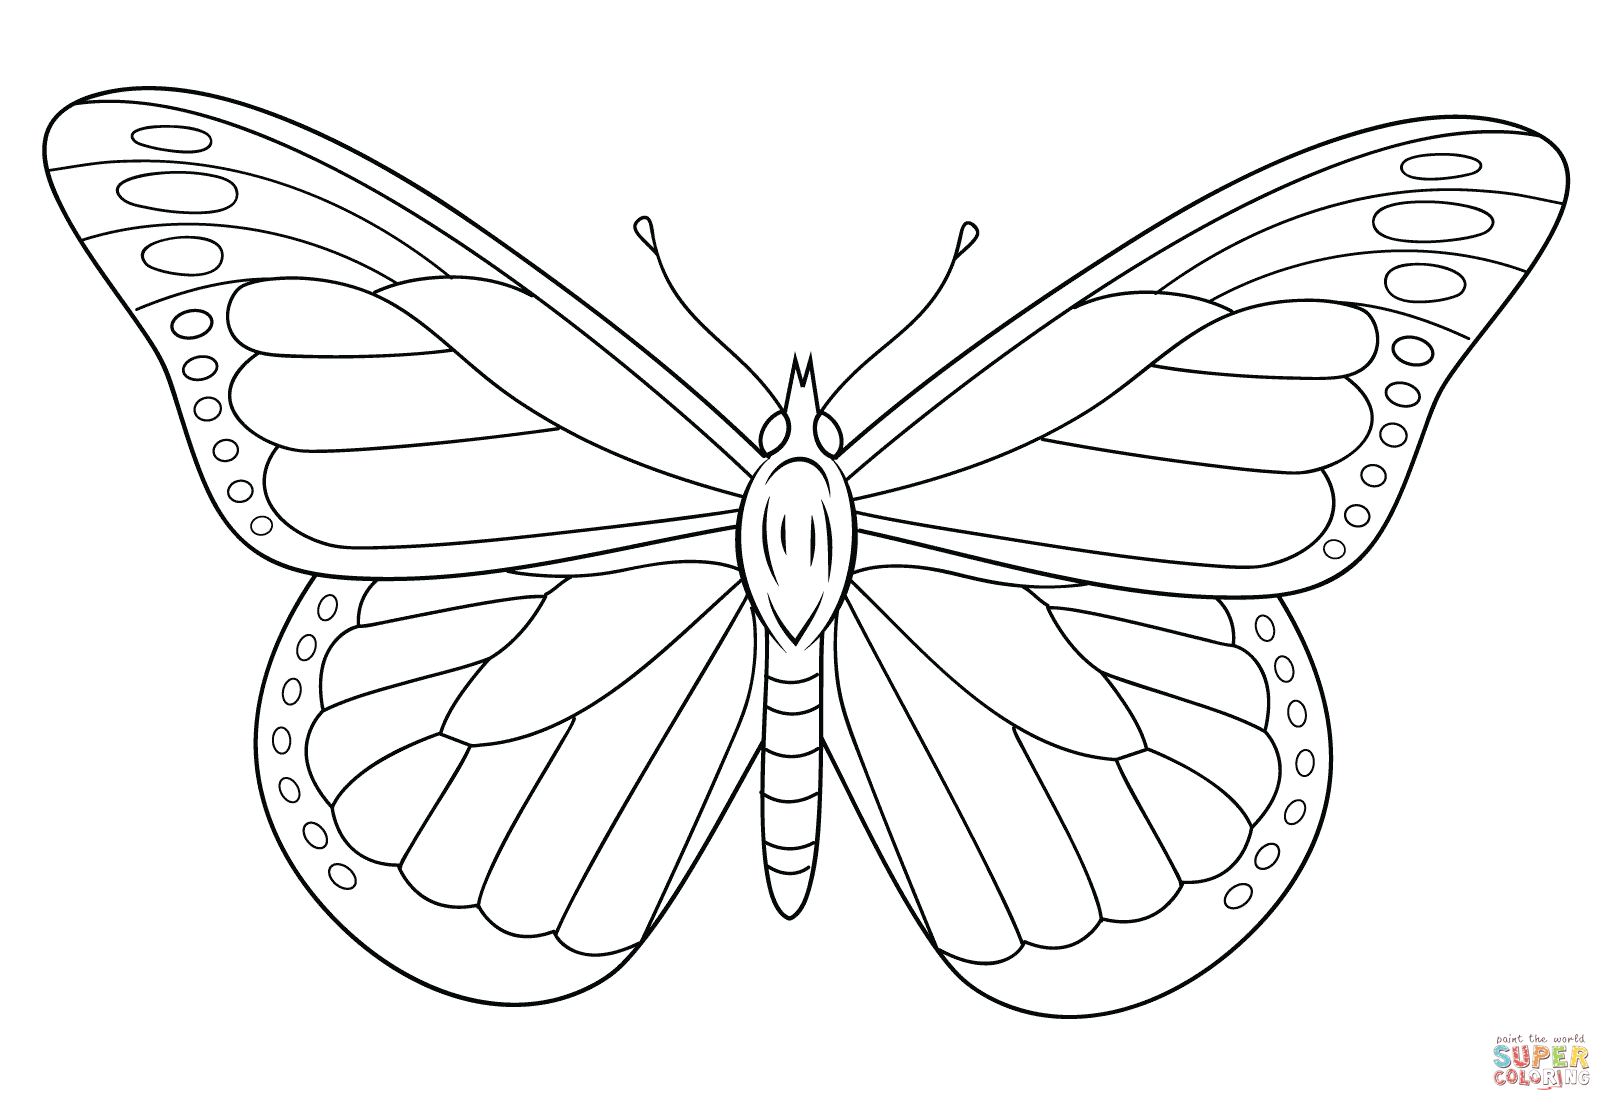 Monarch Butterfly Coloring Page | Free Printable Coloring Pages - Free Printable Butterfly Coloring Pages